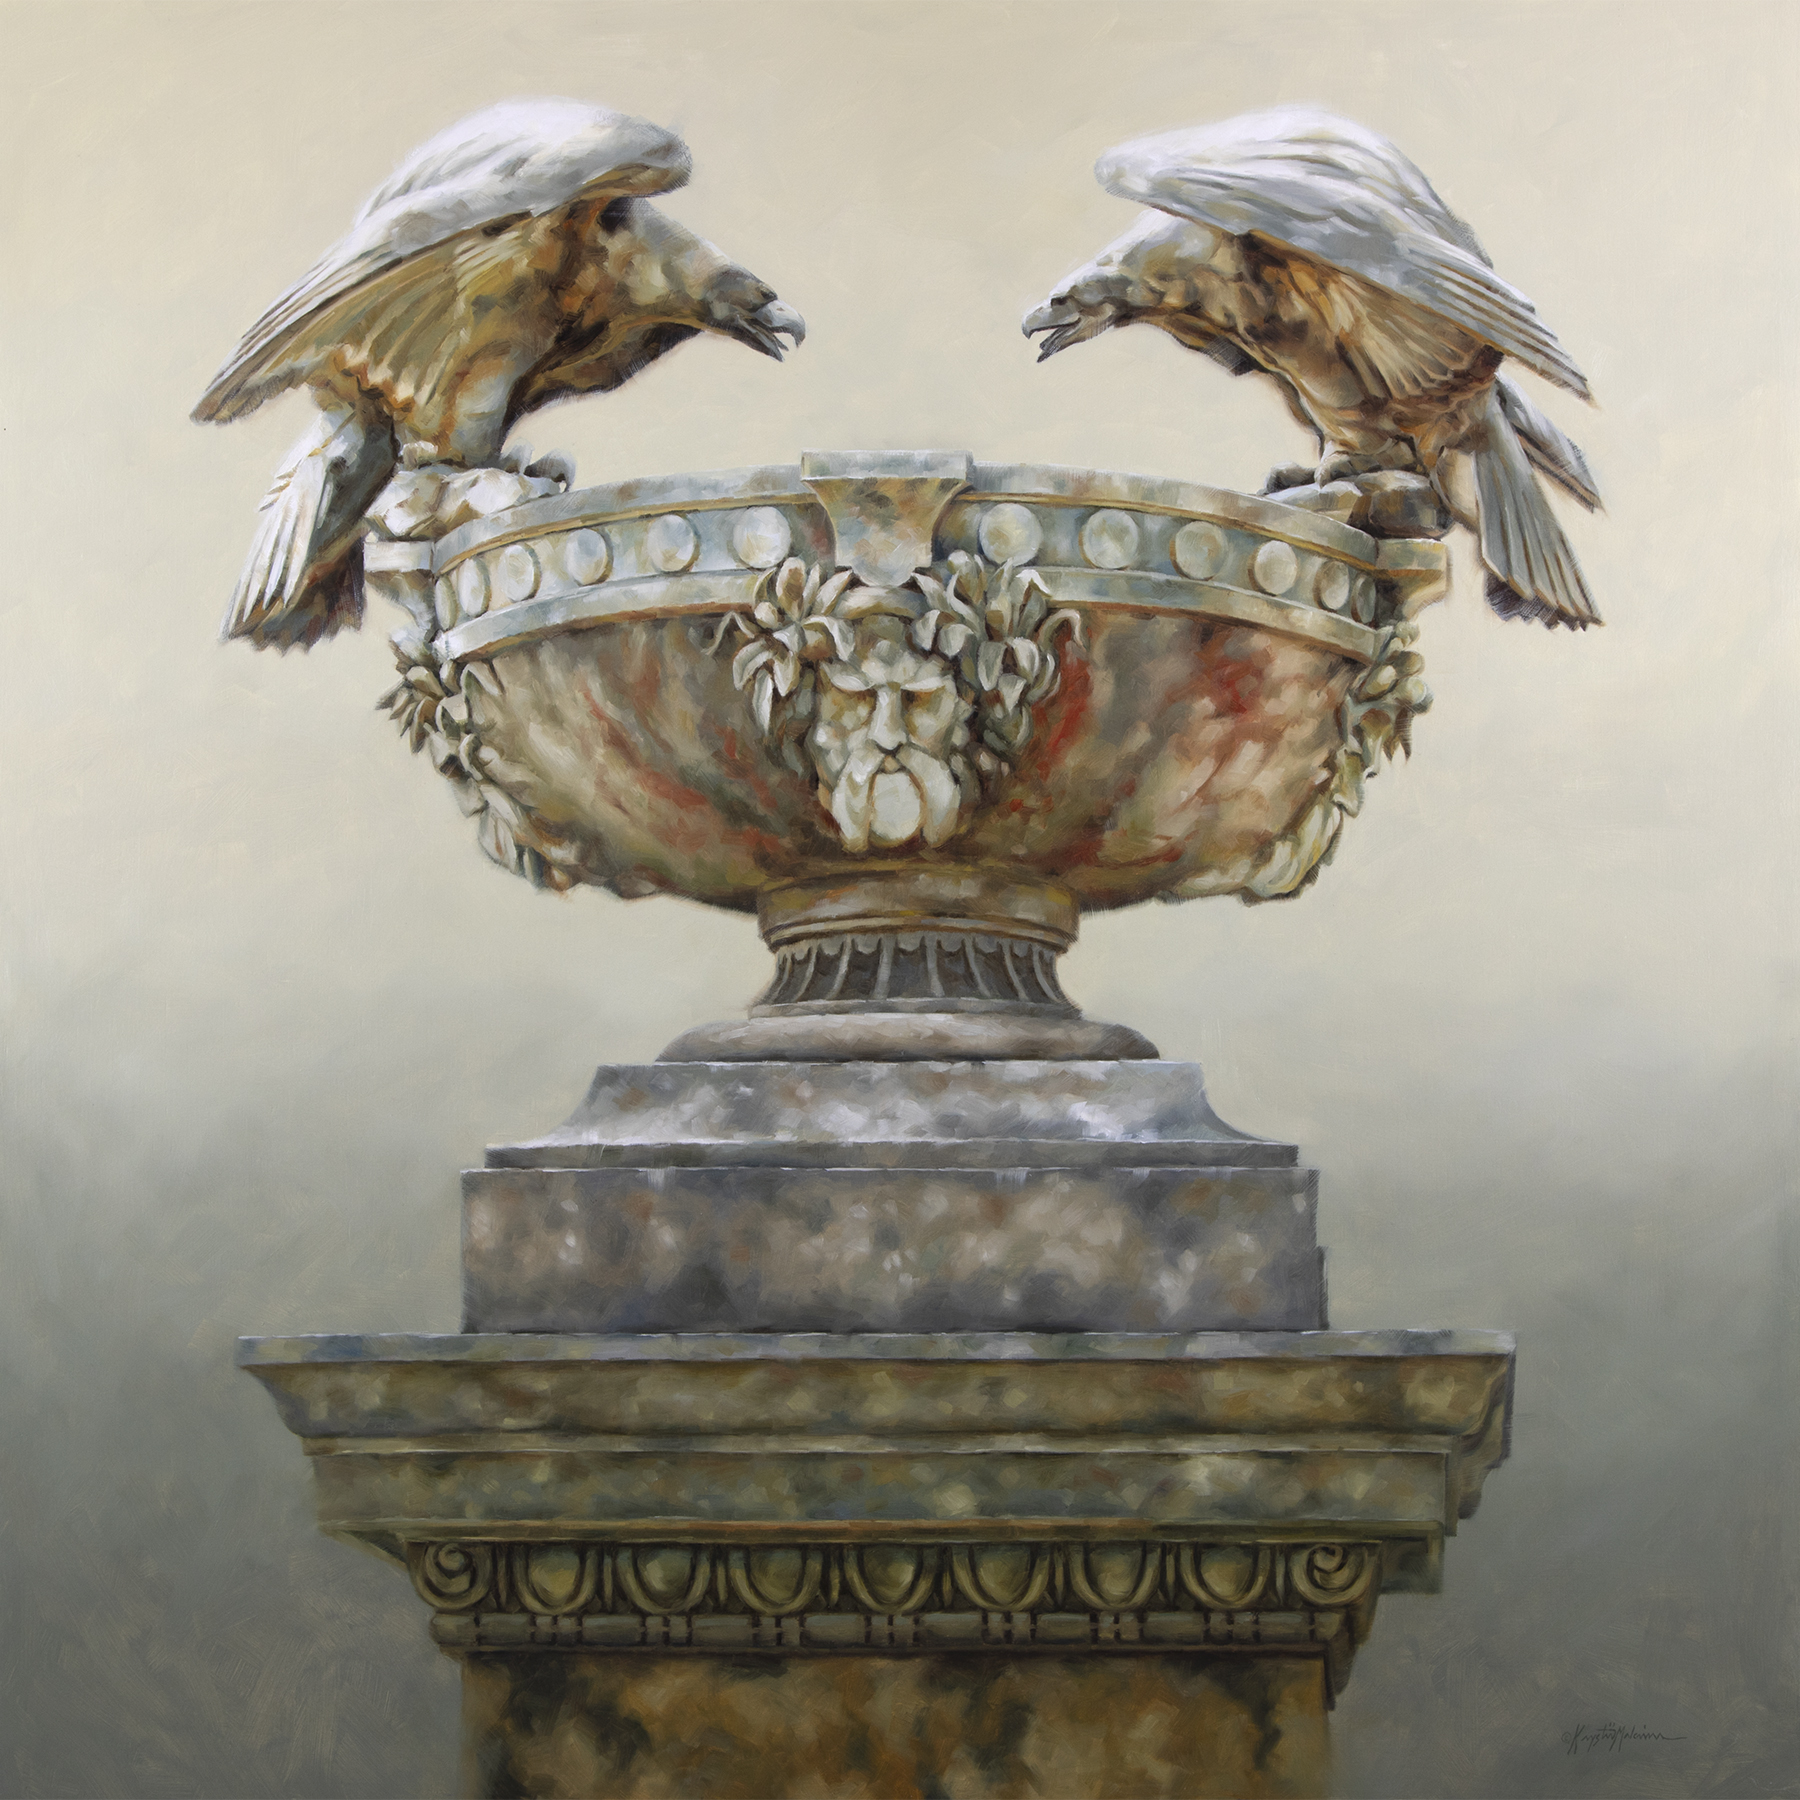 Painting of two stone eagles on a carved urn.